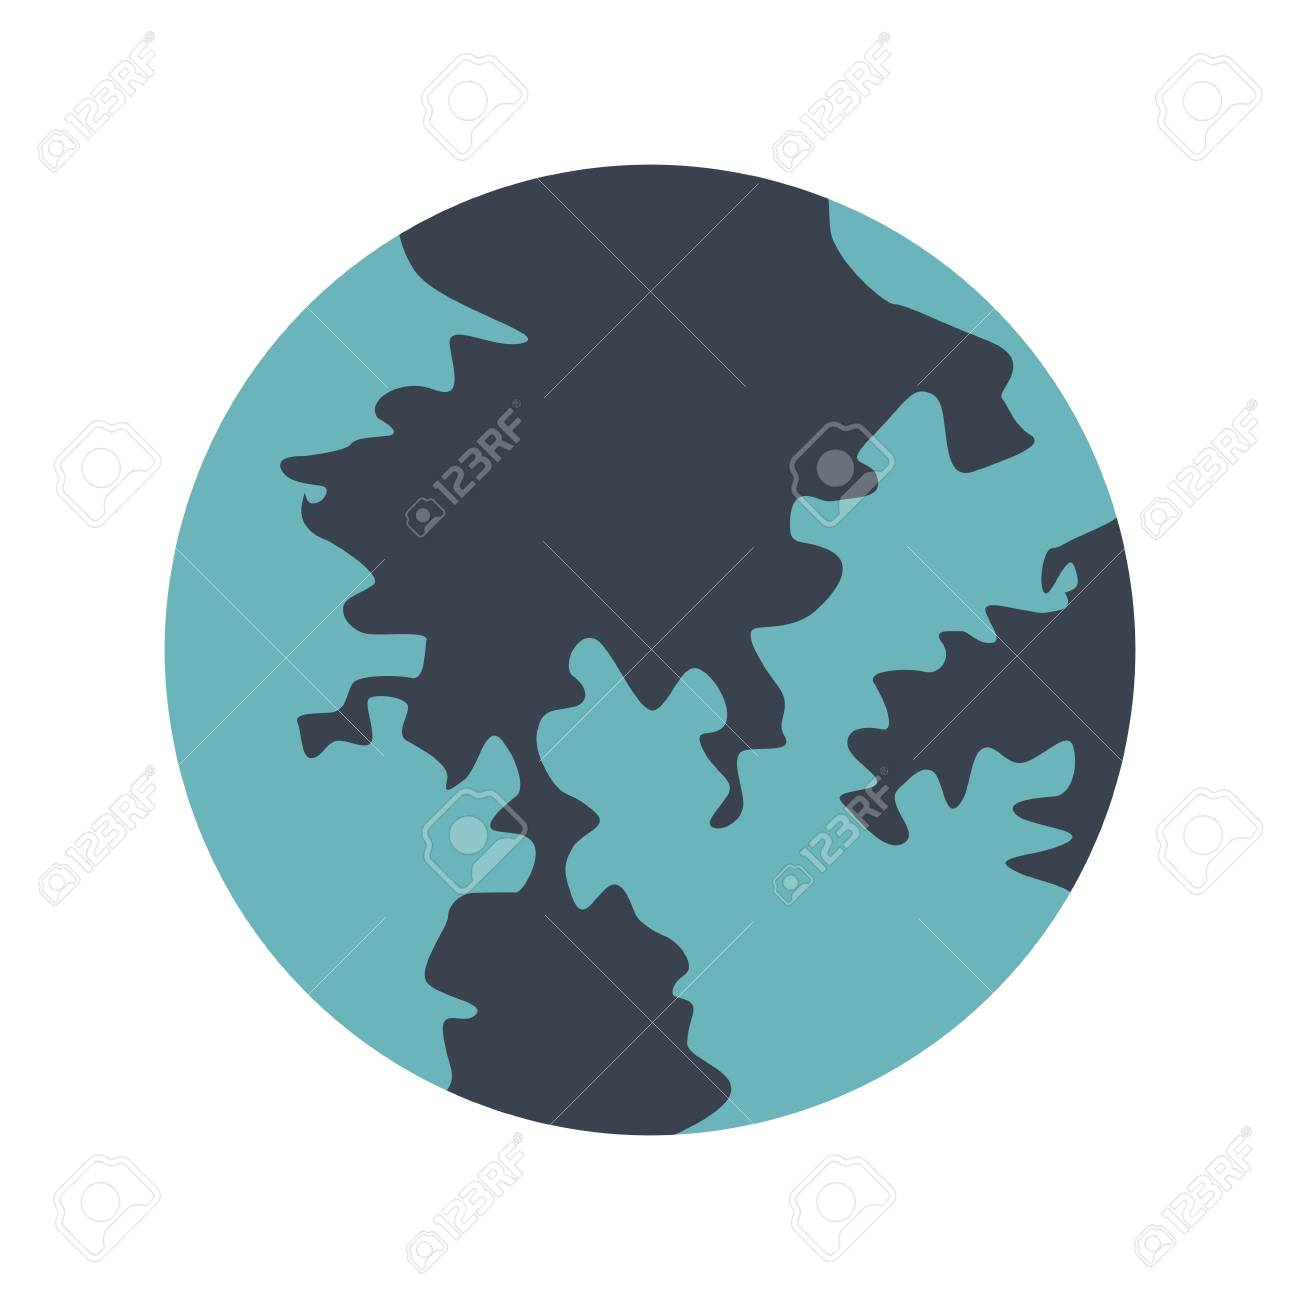 Globe world earth map geography icon vector illustration royalty globe world earth map geography icon vector illustration stock vector 82921332 gumiabroncs Image collections